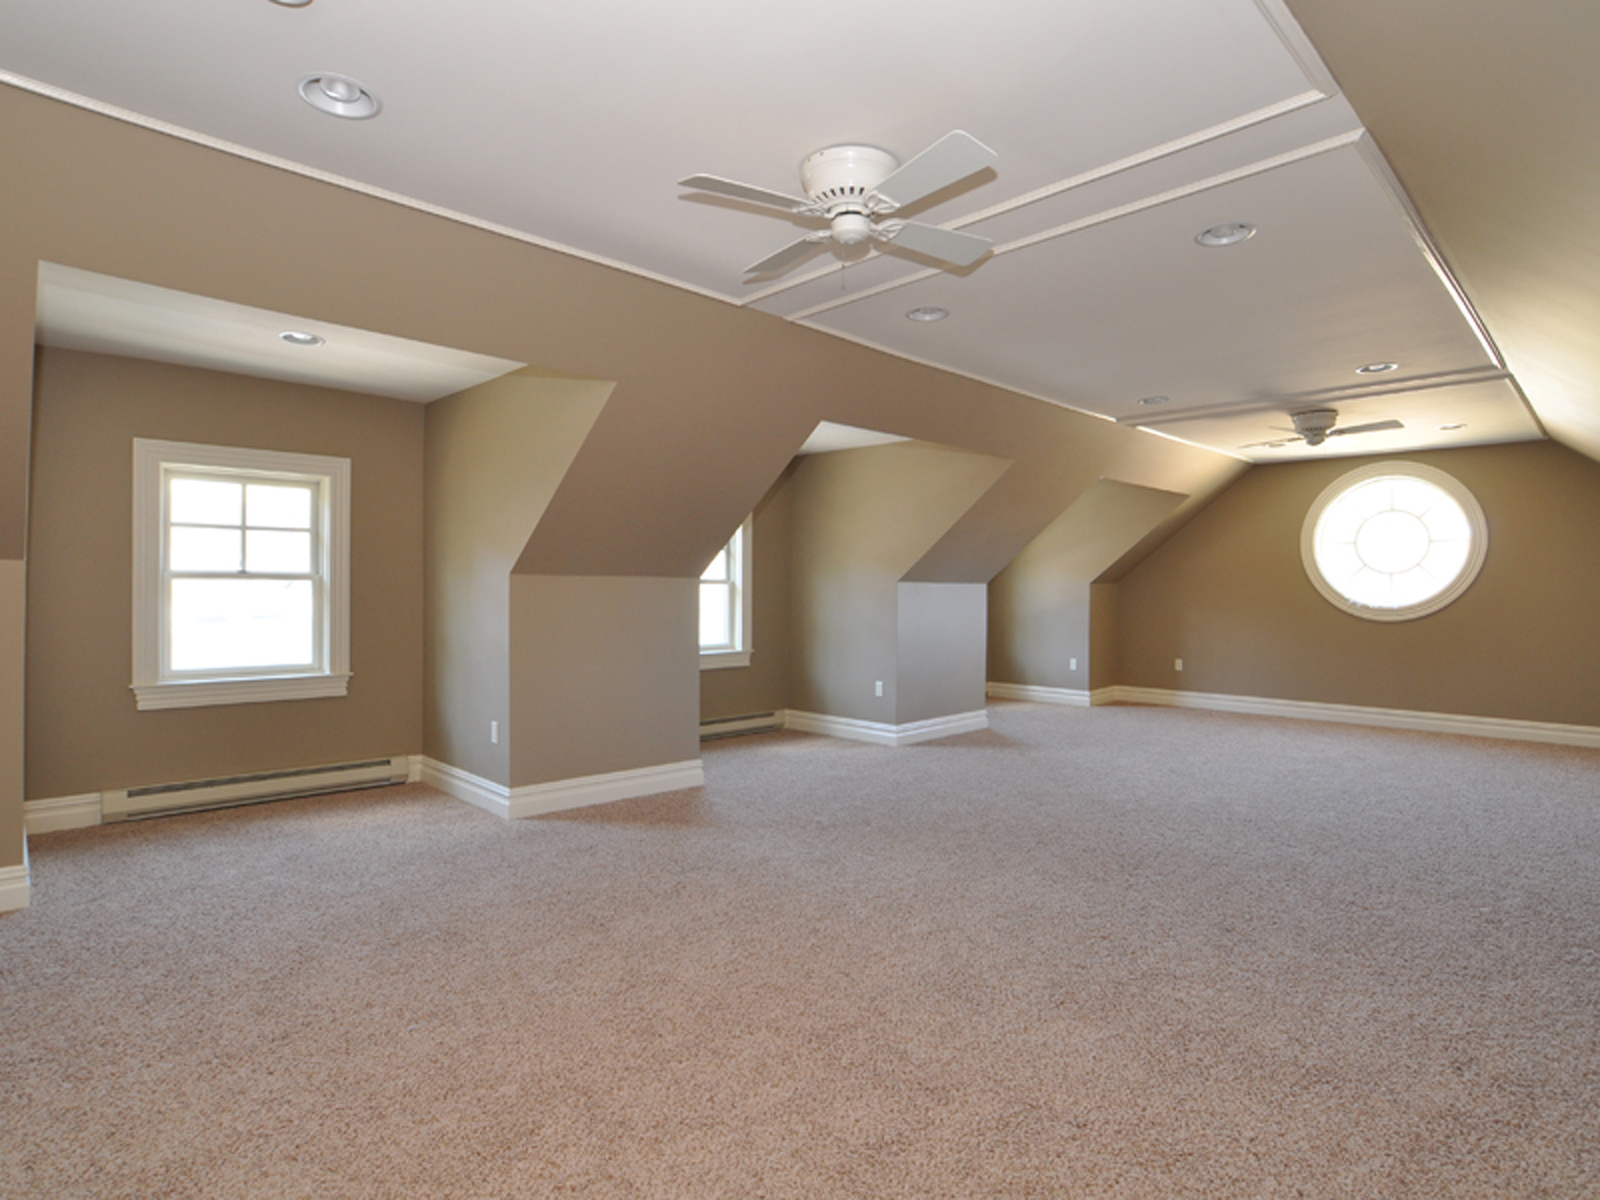 Additional photo for property listing at 2 Warren Drive  Middleton, Massachusetts 01949 United States